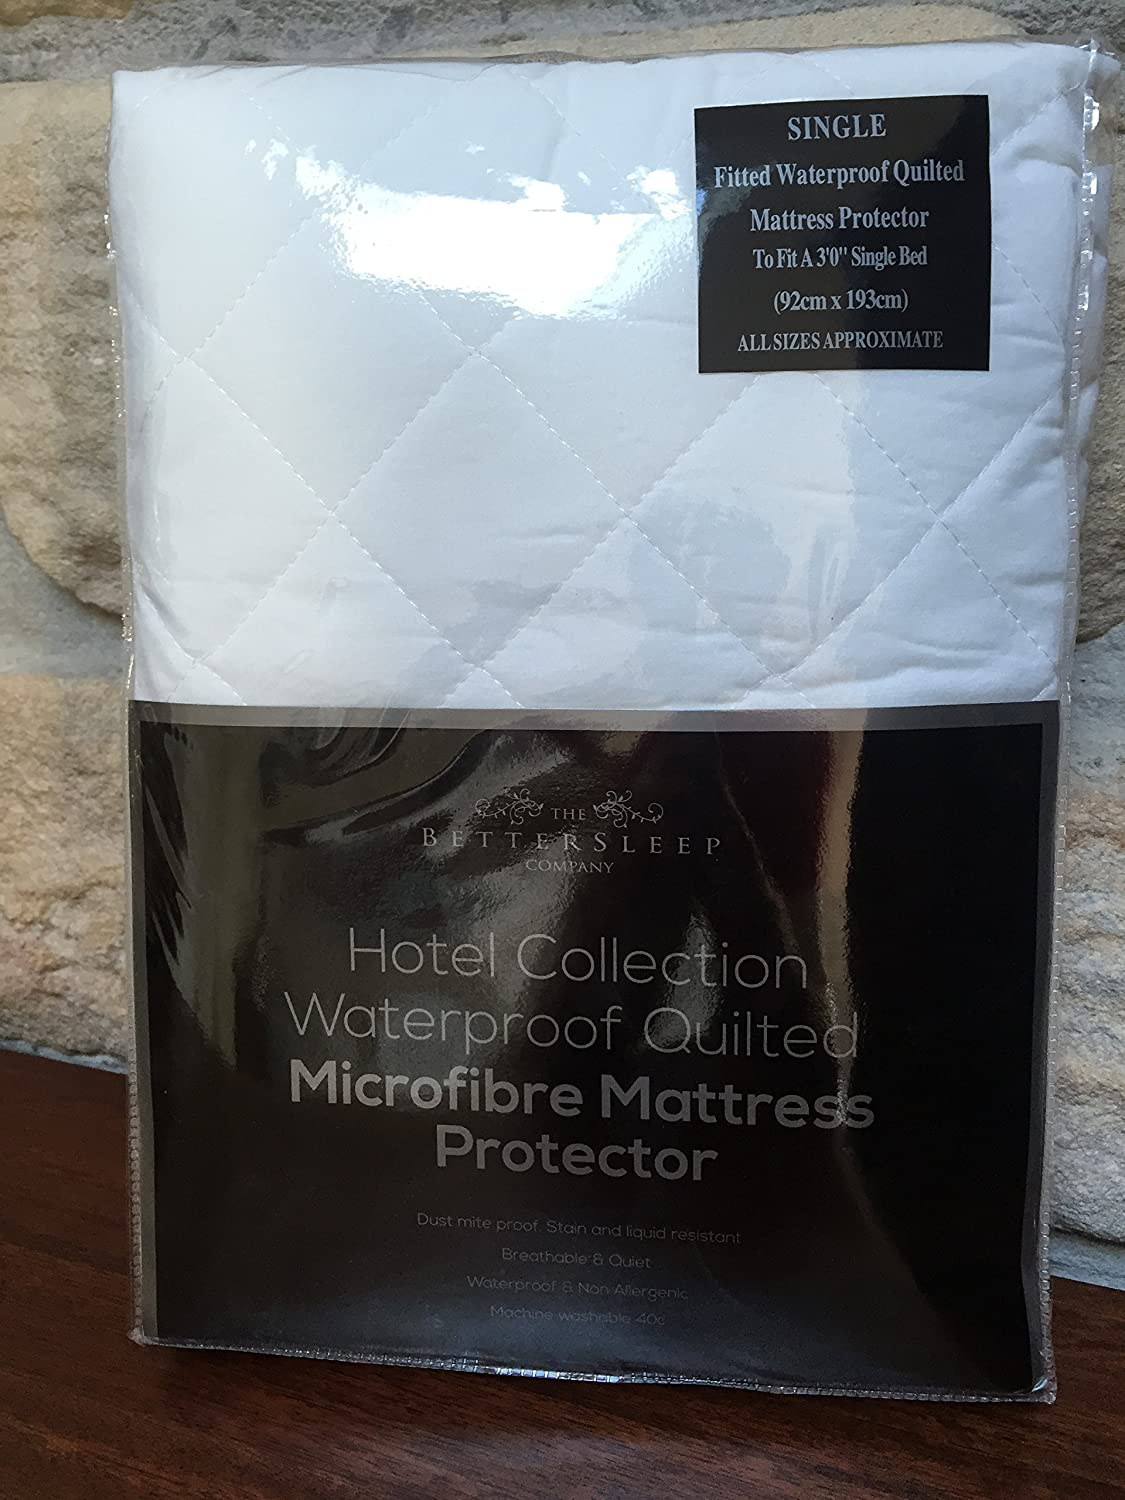 The Bettersleep Company Brand Waterproof Quilted Microfibre Mattress  Protectors Single Bed- Hotel Quality Anti Dustmite